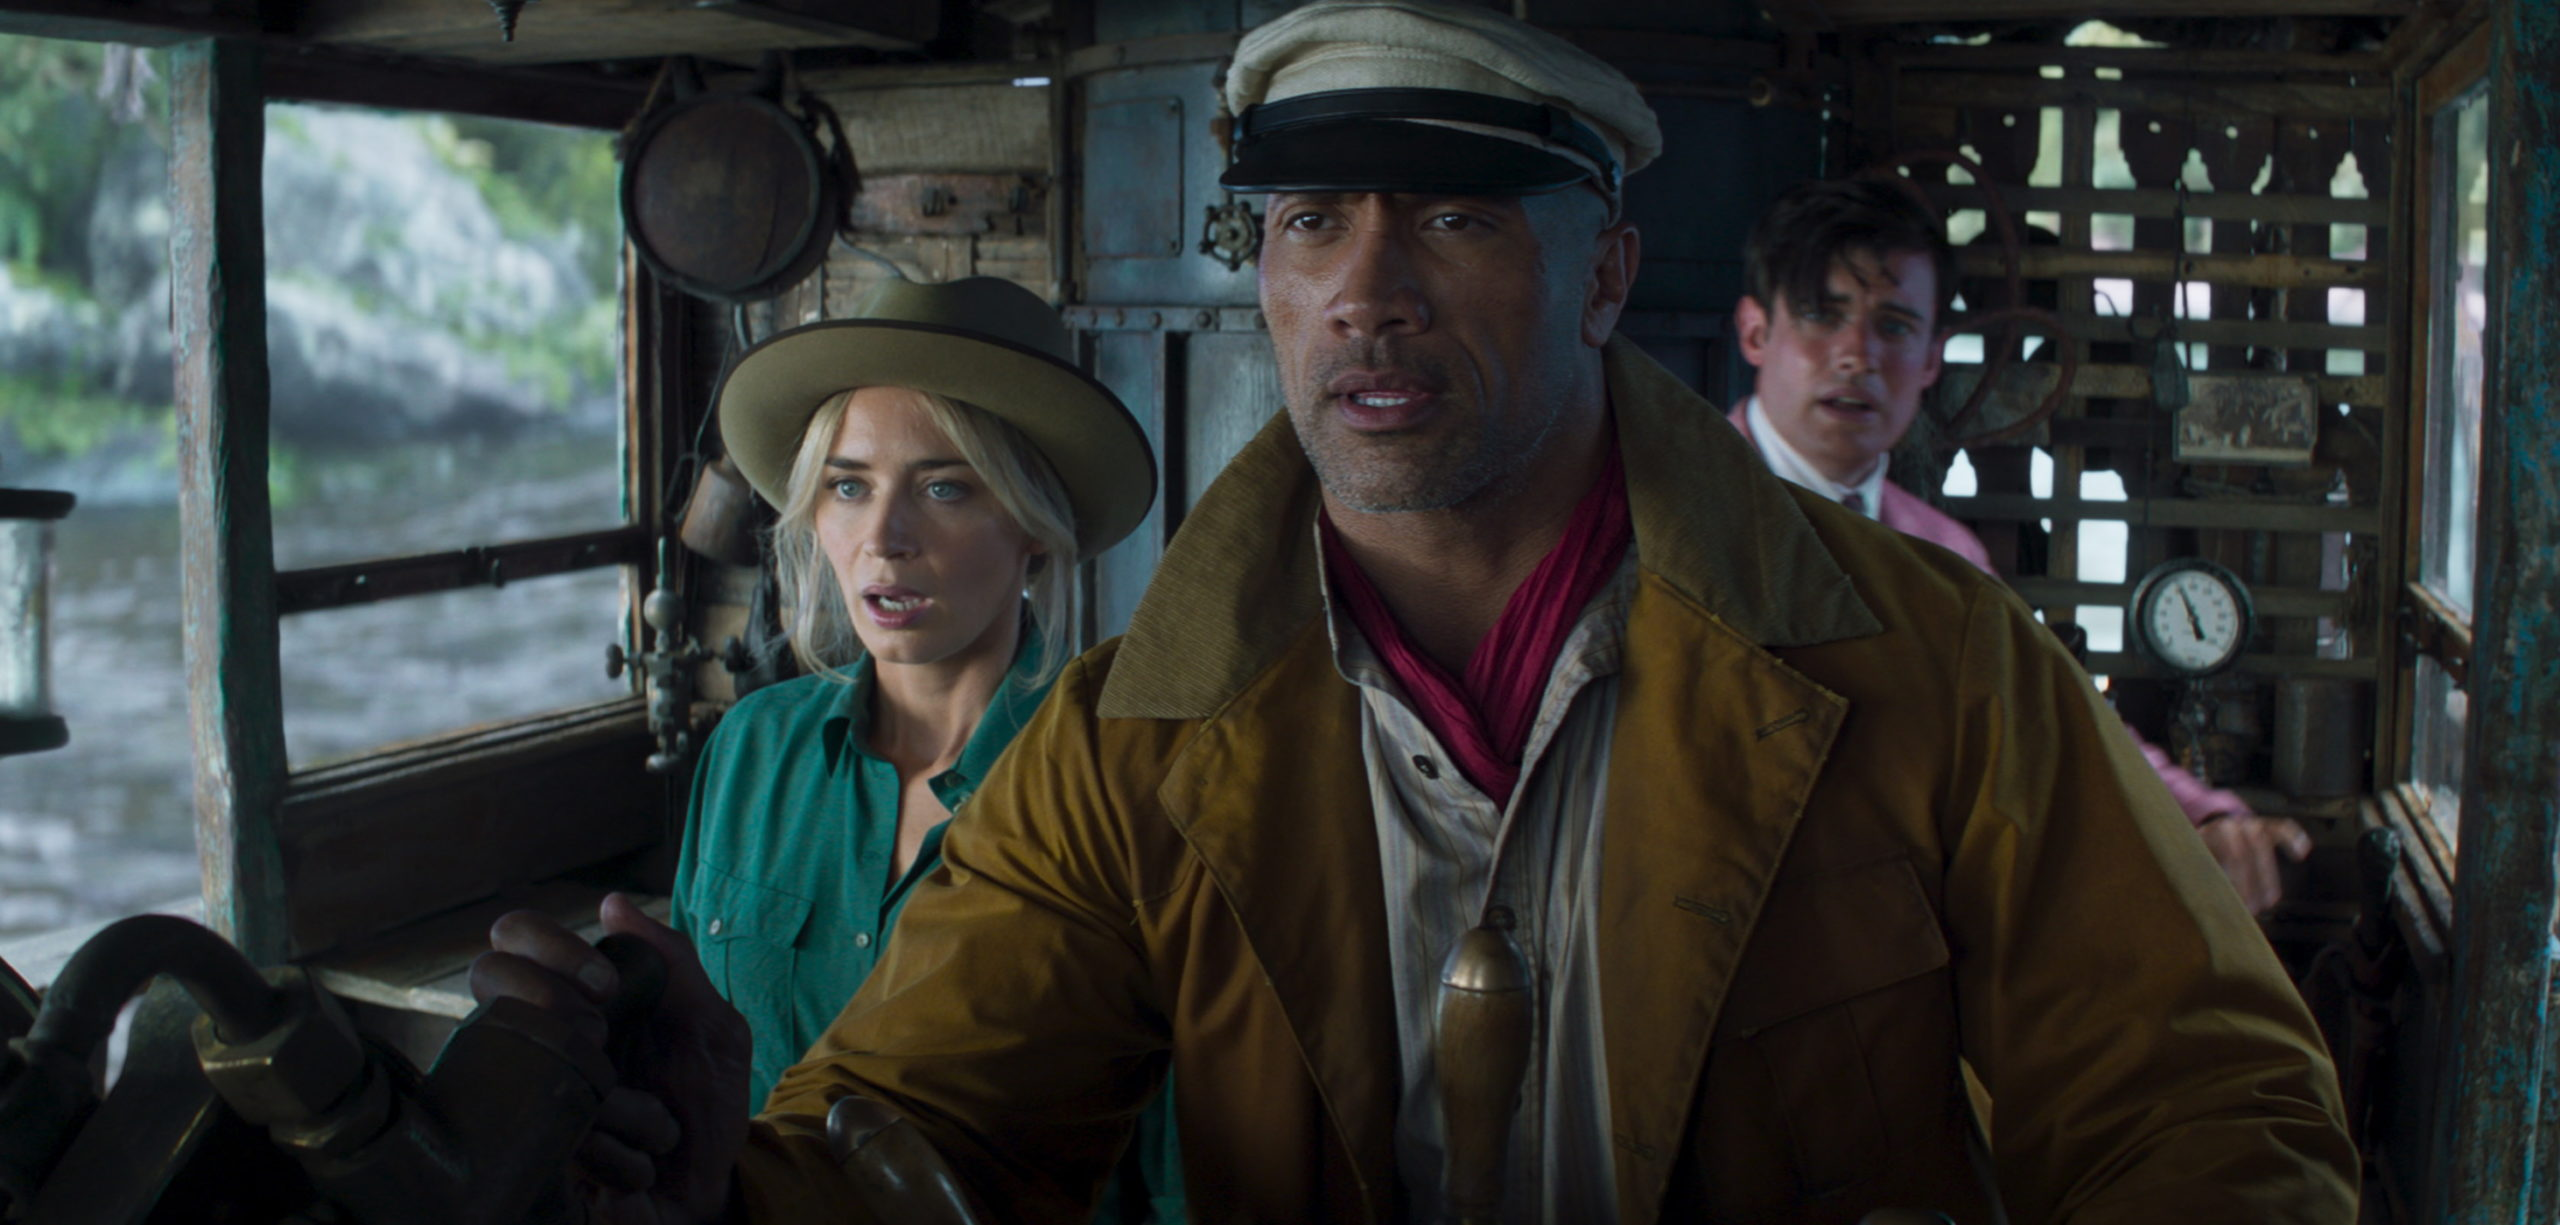 Thanks To Disney+ Premiere Access You Can Now Stream Disney's Jungle Cruise